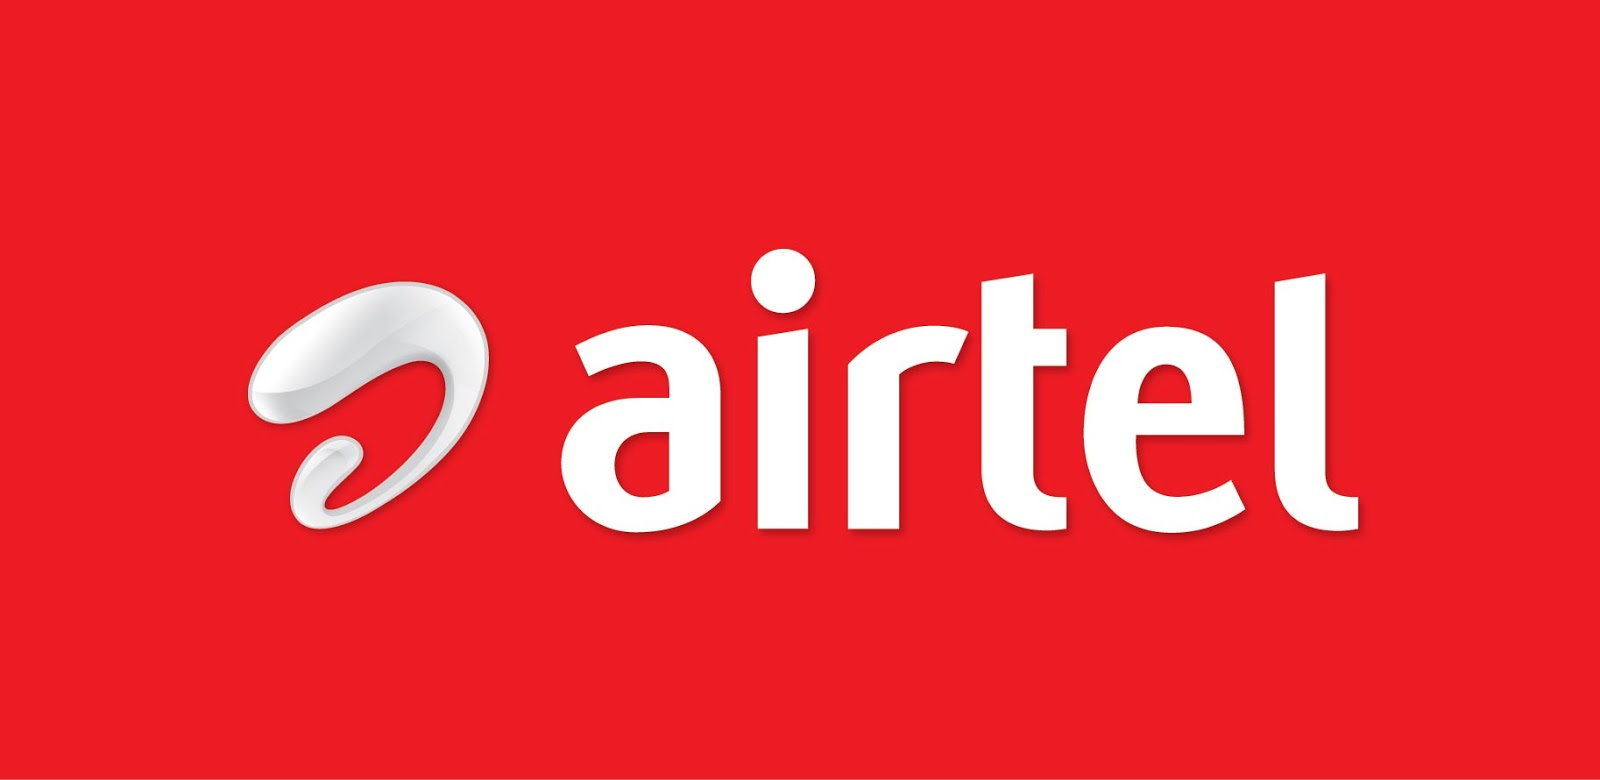 May 2018 Airtel Cheat - Get 3GB For N1000 Only, All Sims Accepted